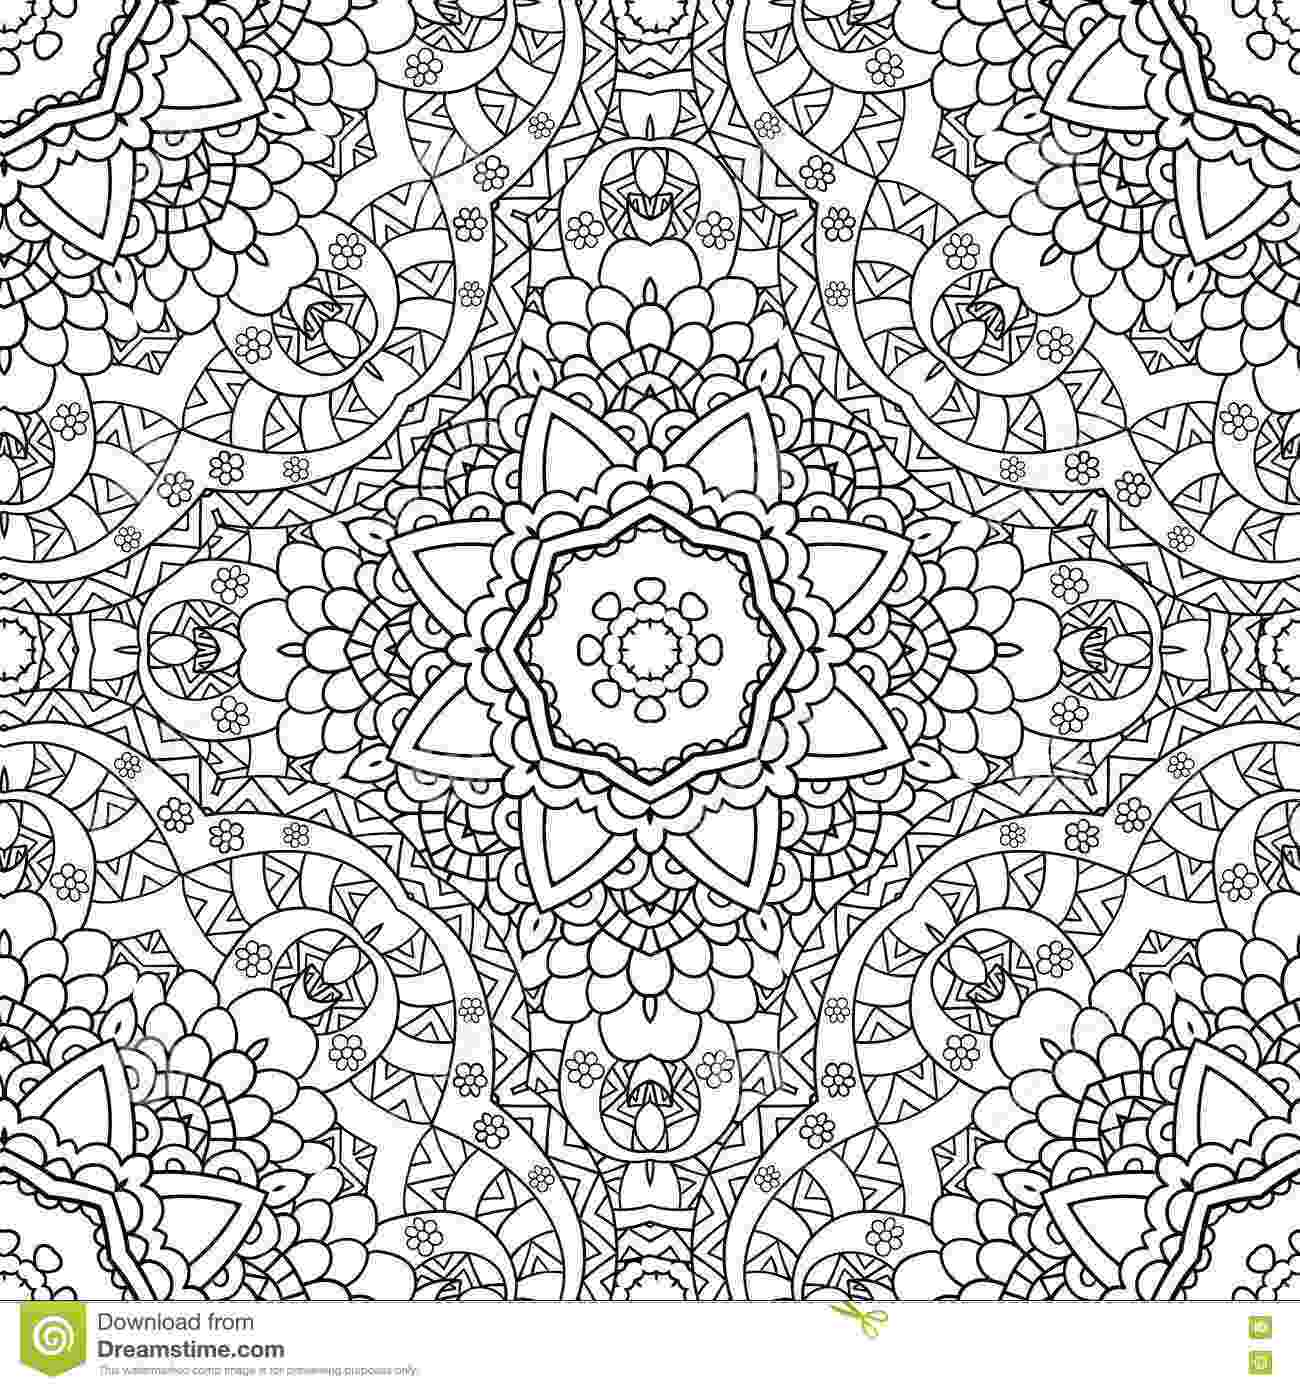 coloring pages for adults patterns coloring pages for adultsdecorative hand drawn doodle coloring adults patterns pages for